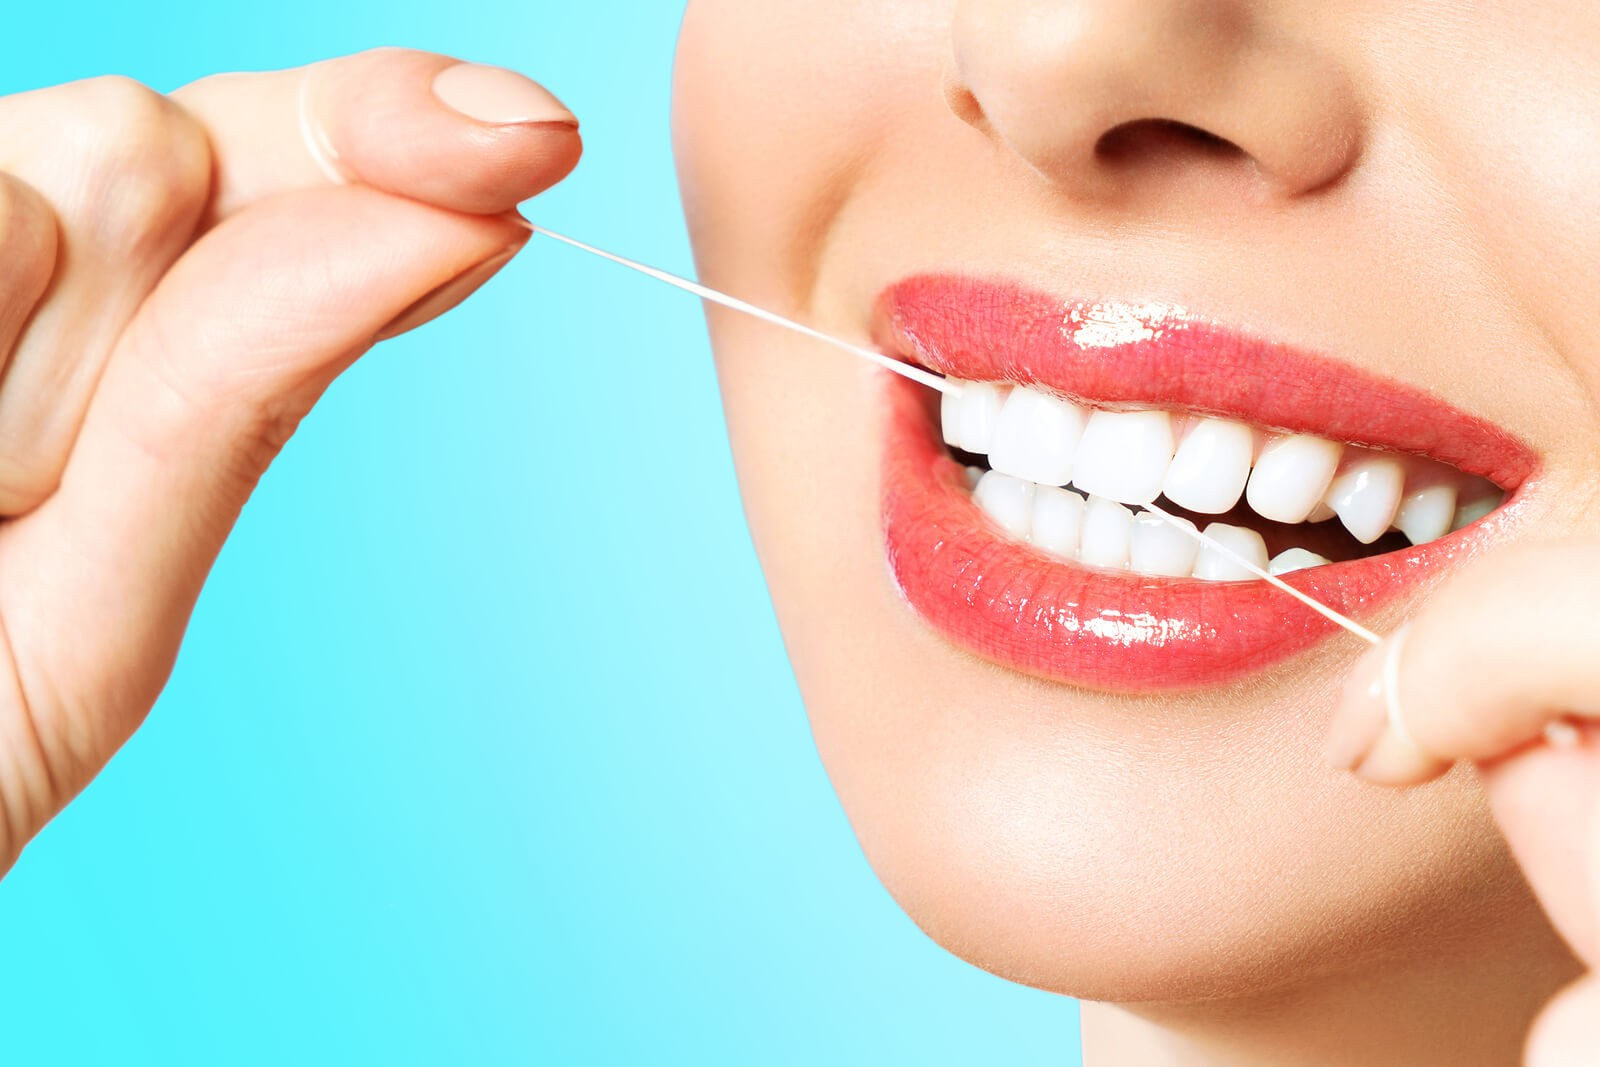 How to Floss Your Teeth Using the Holistic Approach